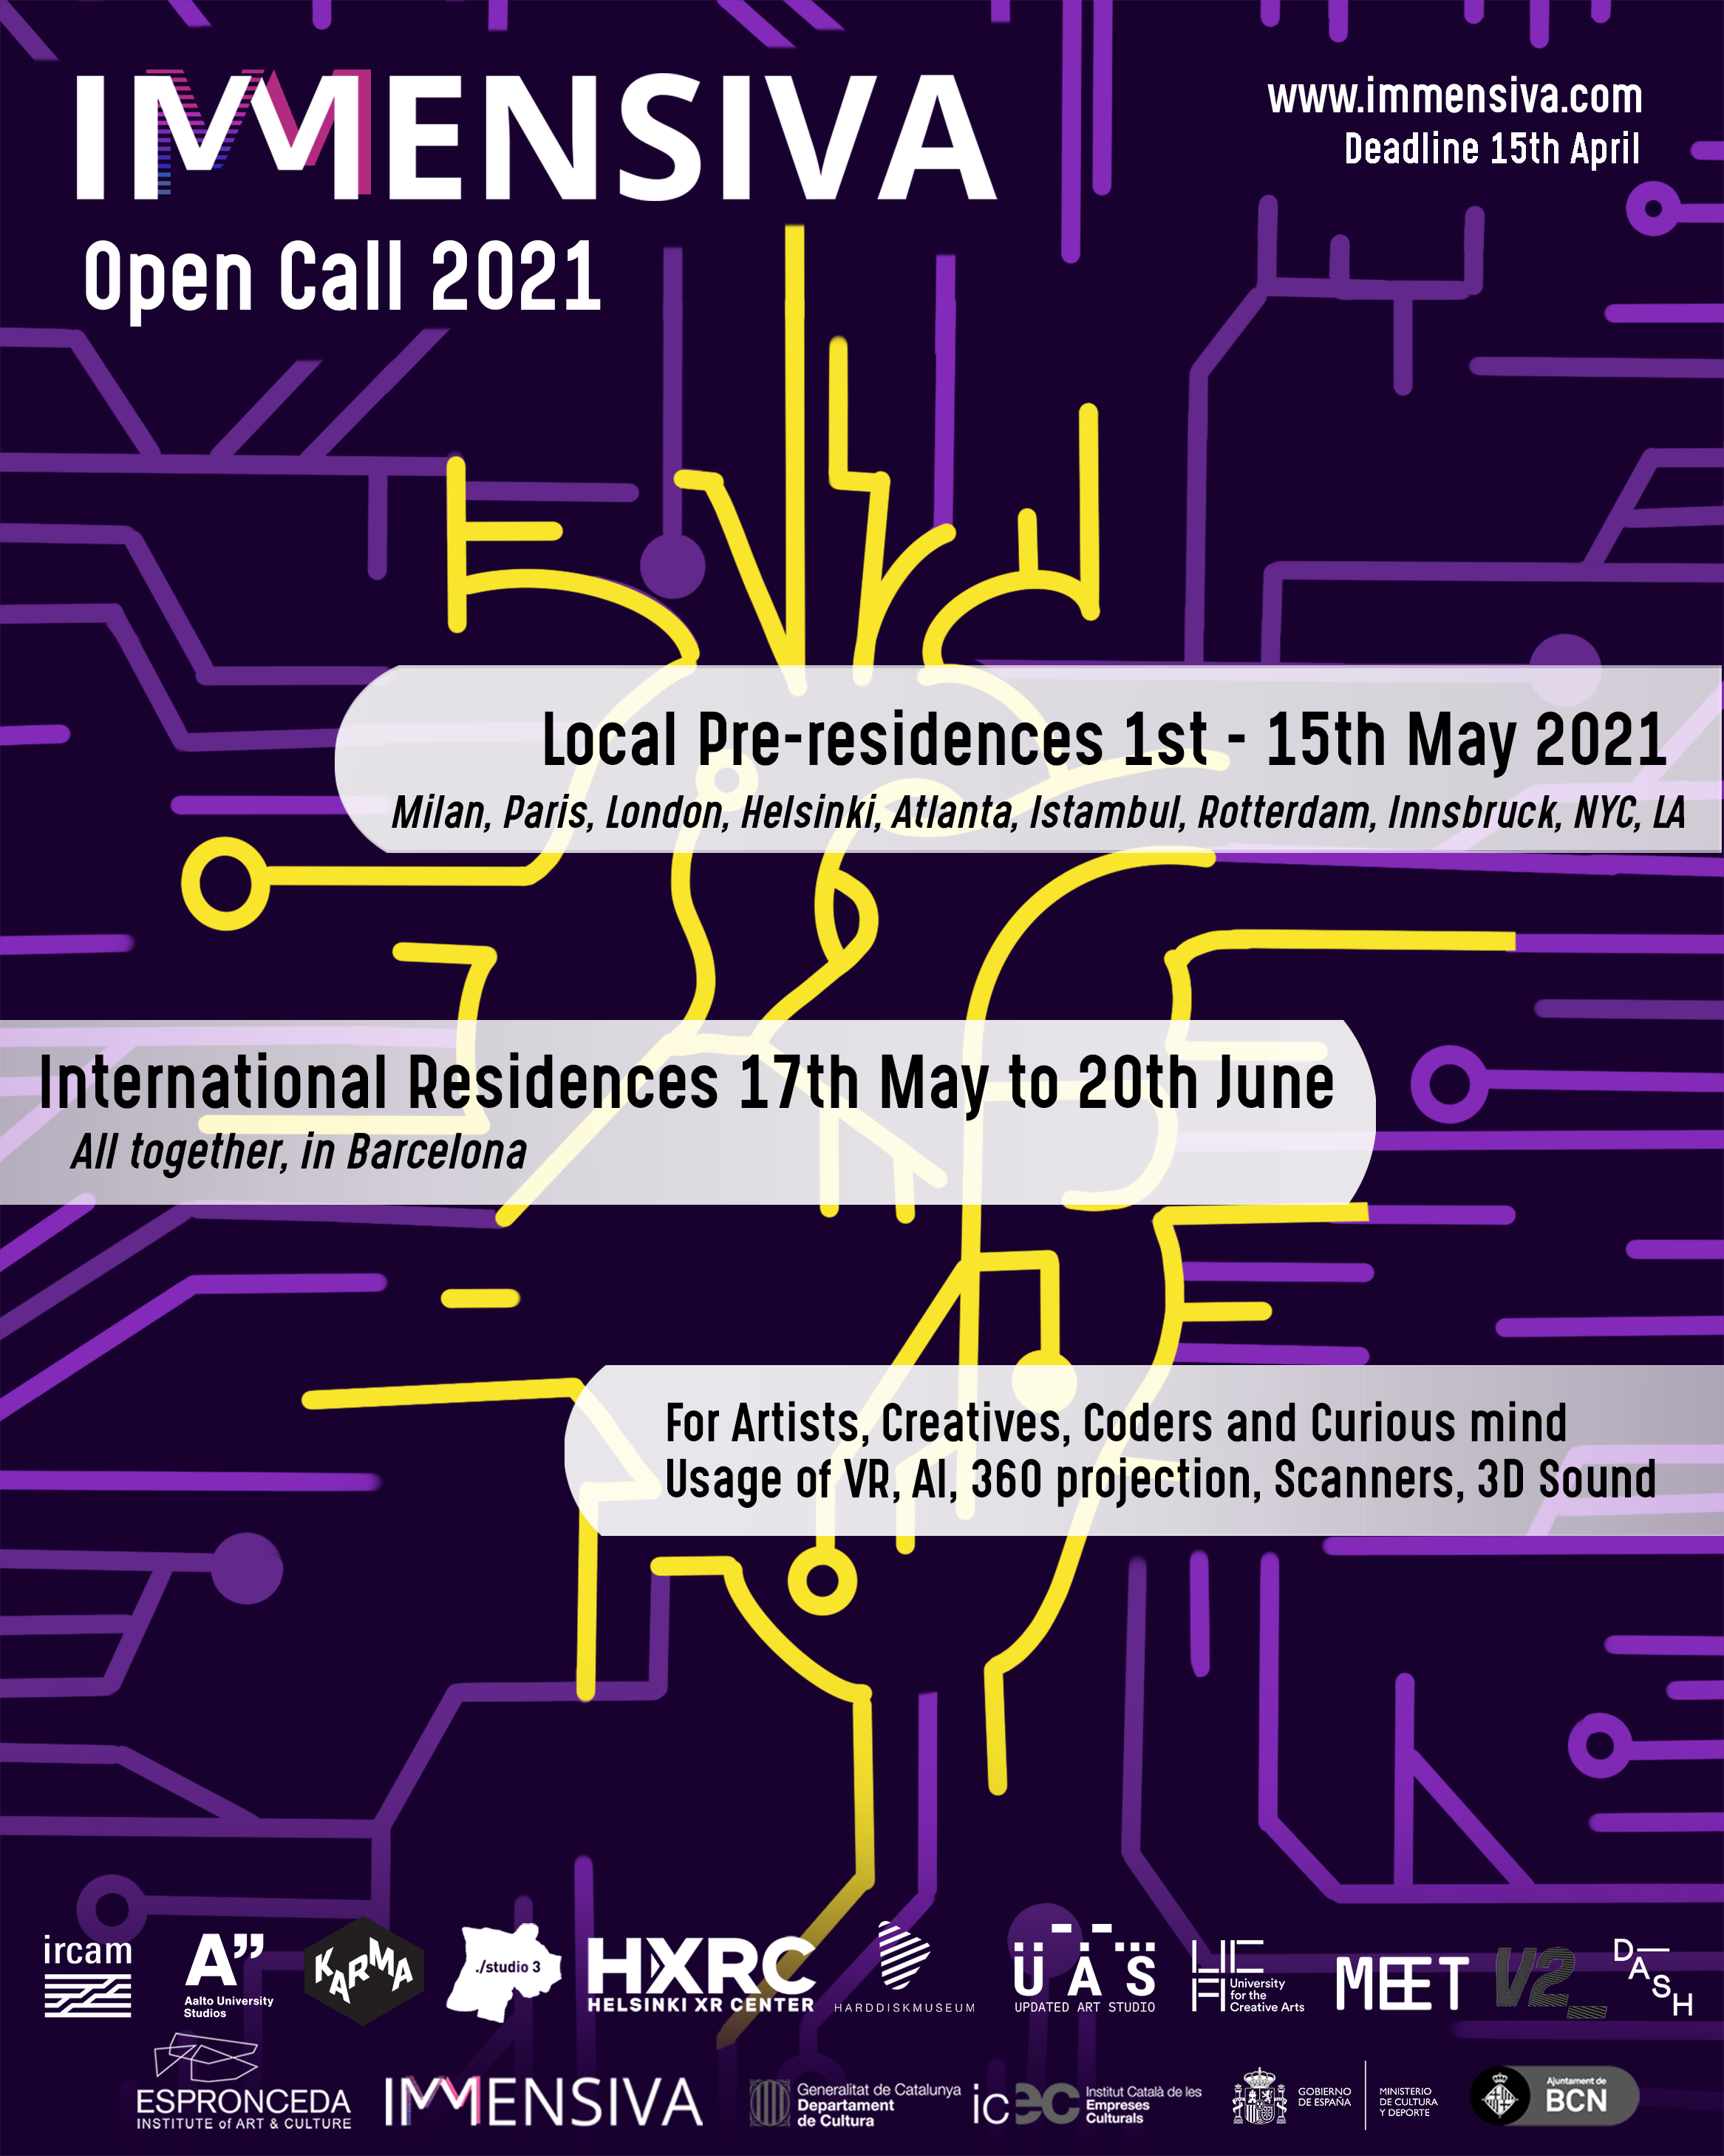 Immensiva Open Call 2021